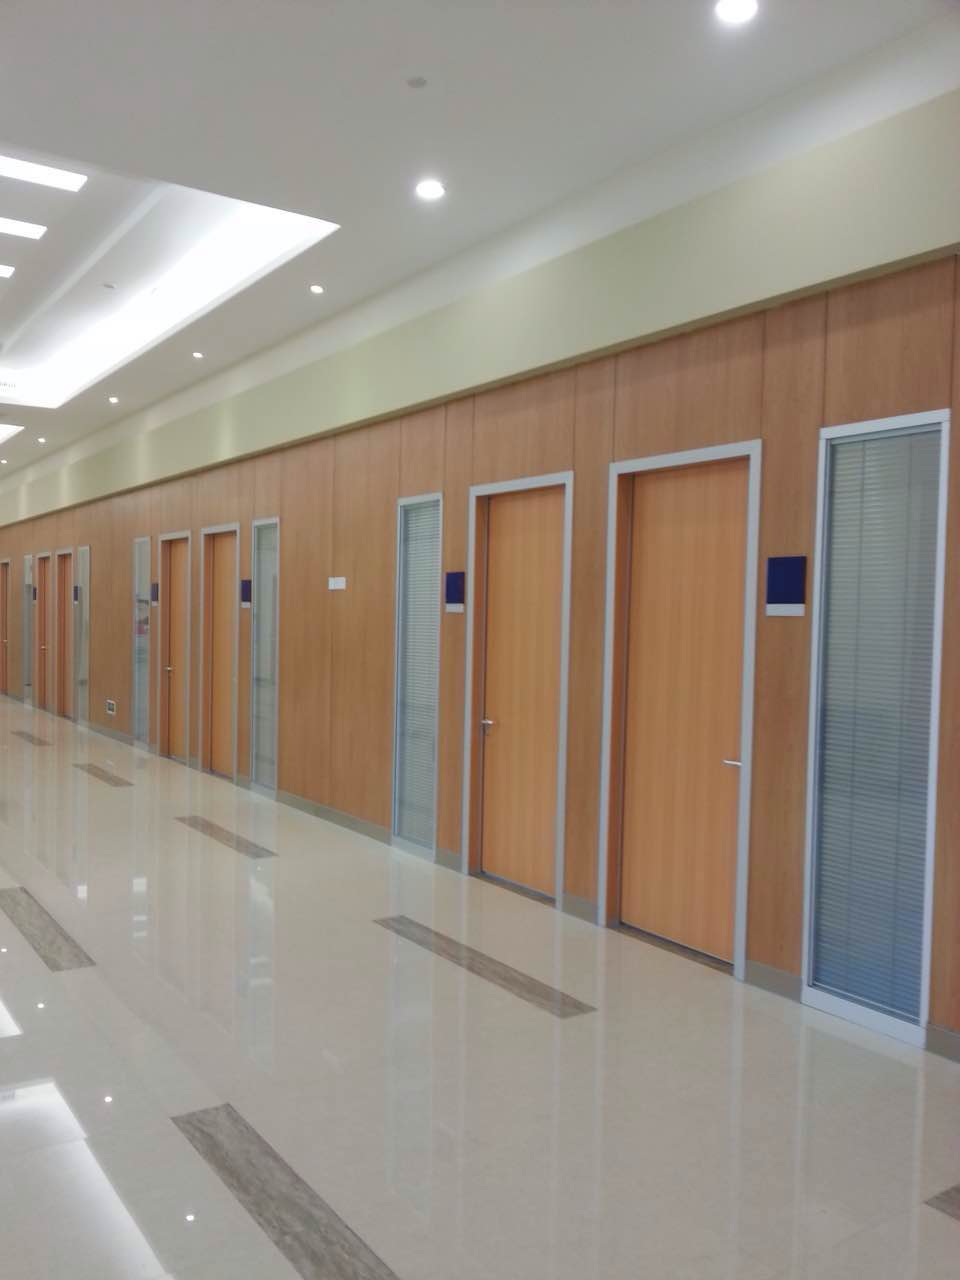 Flush hospital doors nowdays have been widely used in modern hopistal room due to its modern look ing and easy maintenance. Samekom have developed a new ... & Modern hospital doors manufacturers pezcame.com